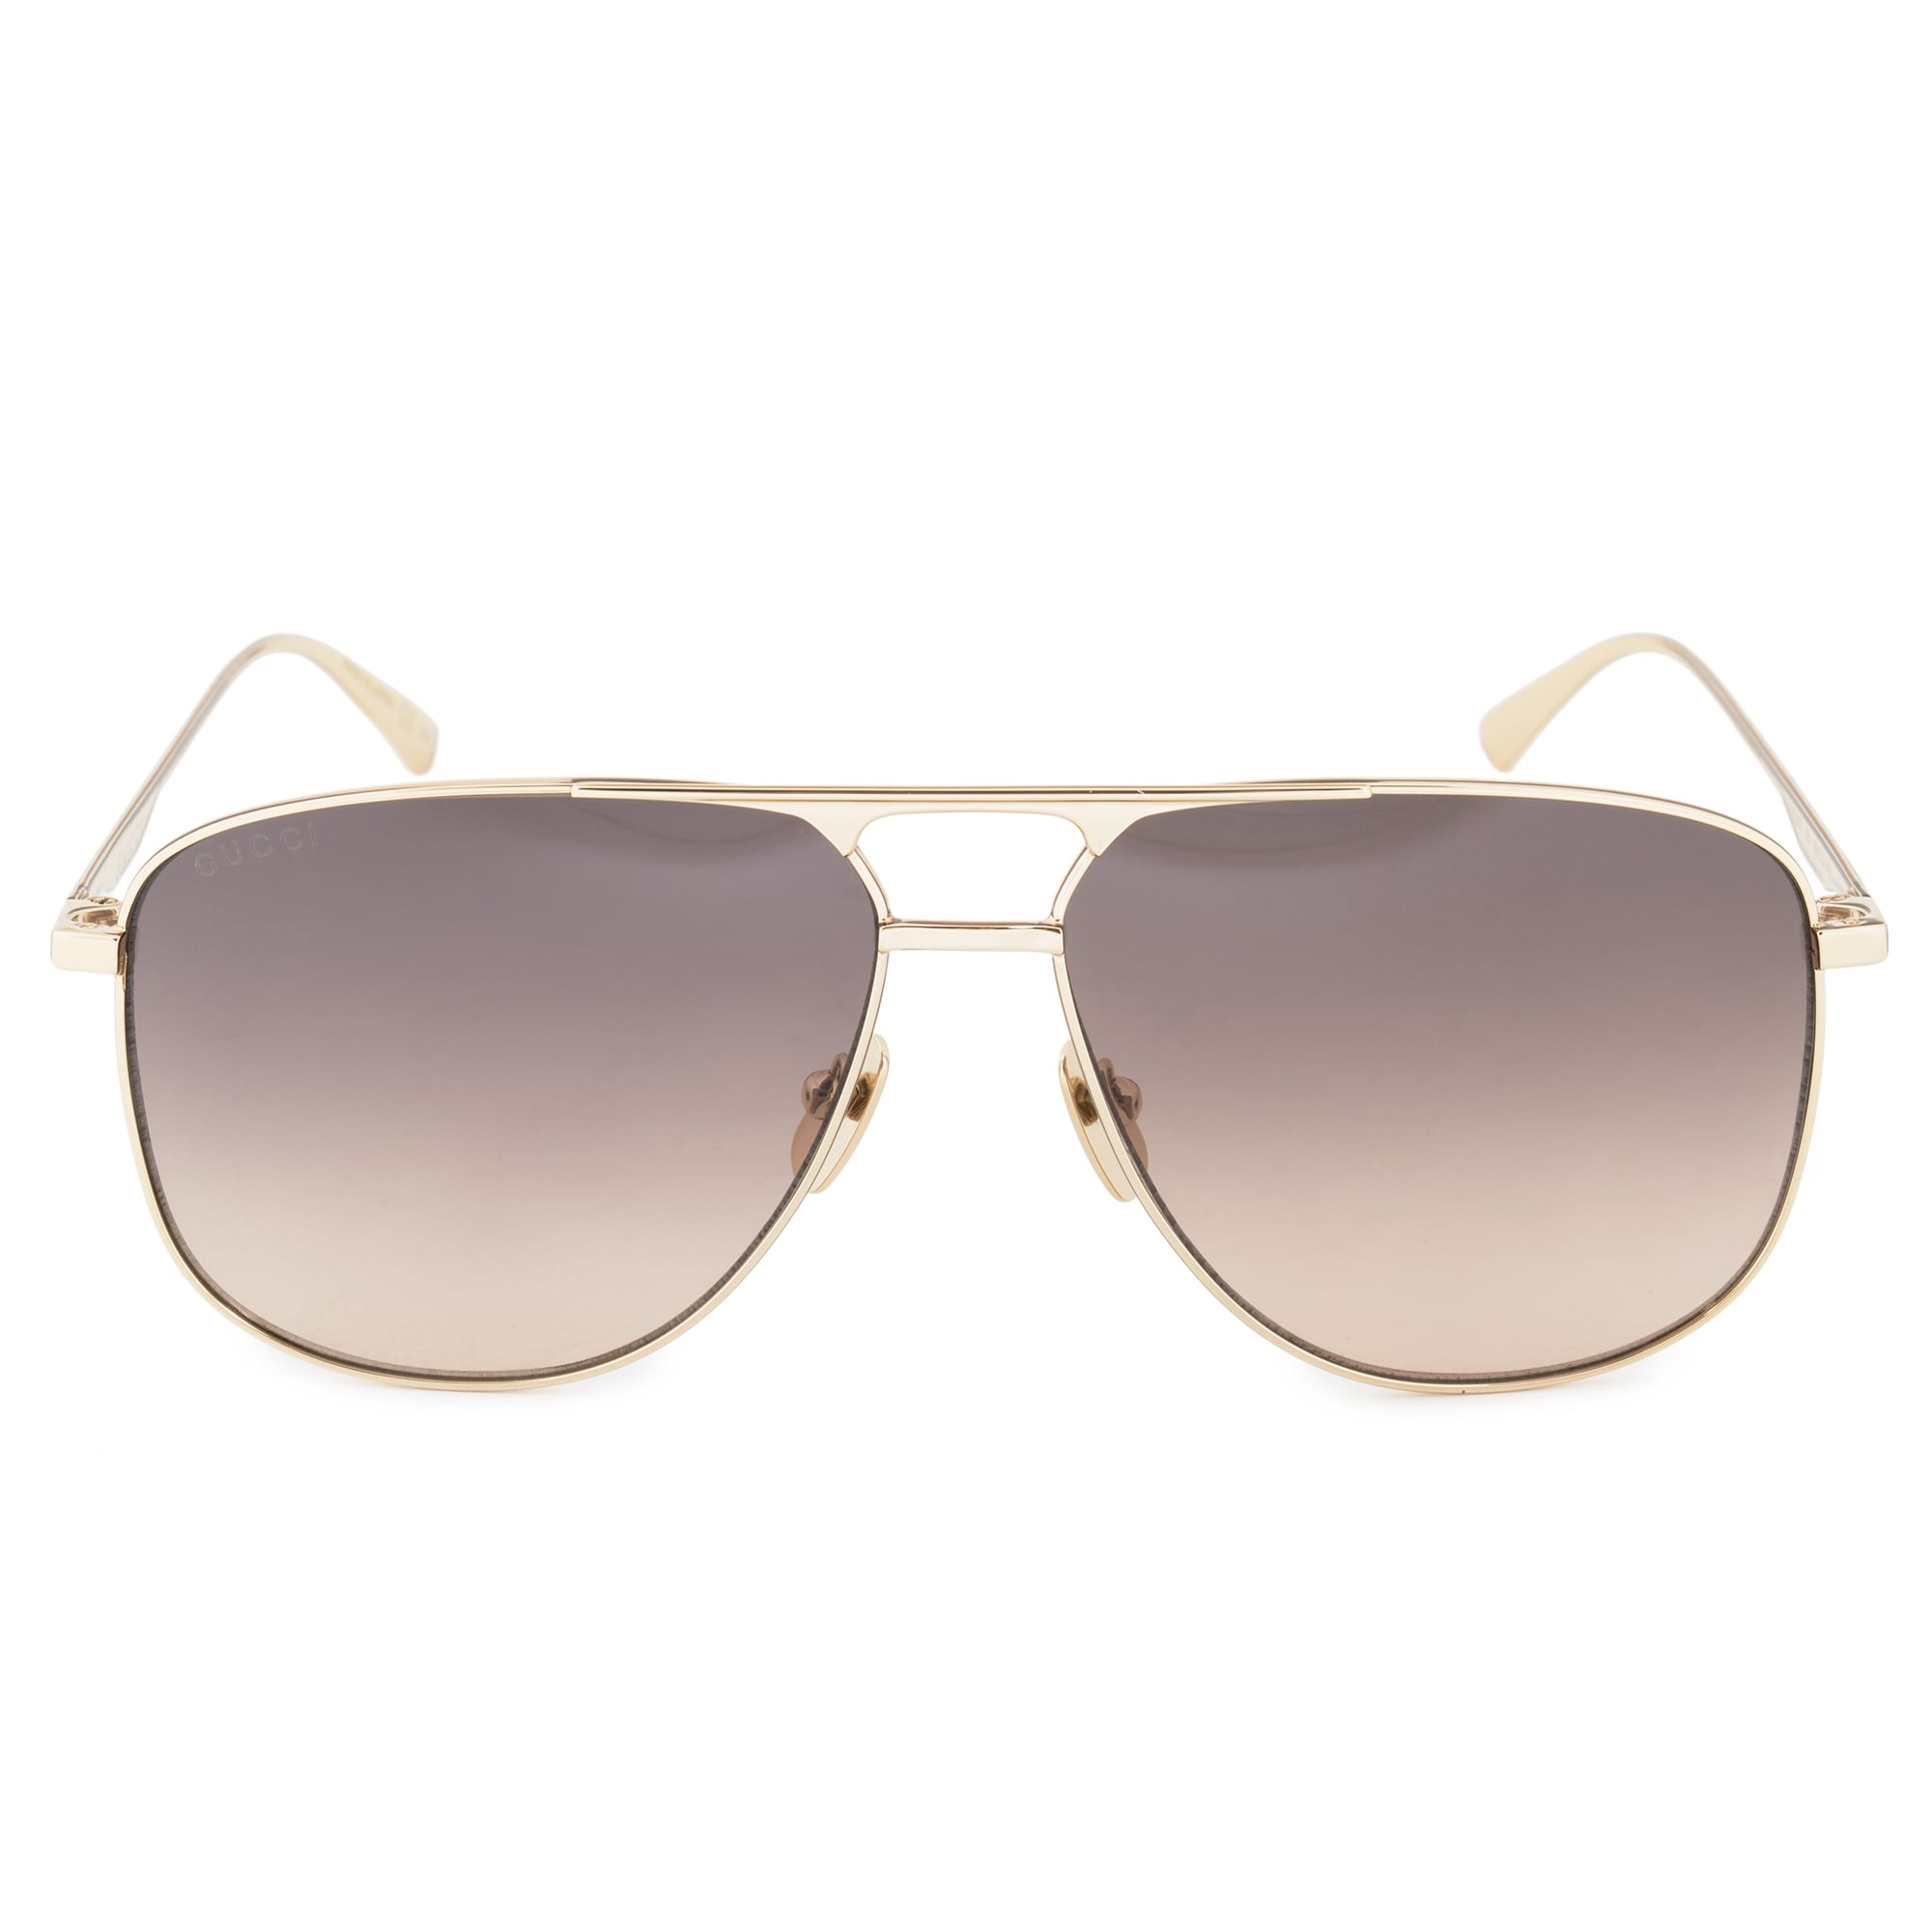 81c38263bc7 Shop Gucci GG0336S 001 60 Aviator Sunglasses - Free Shipping Today ...